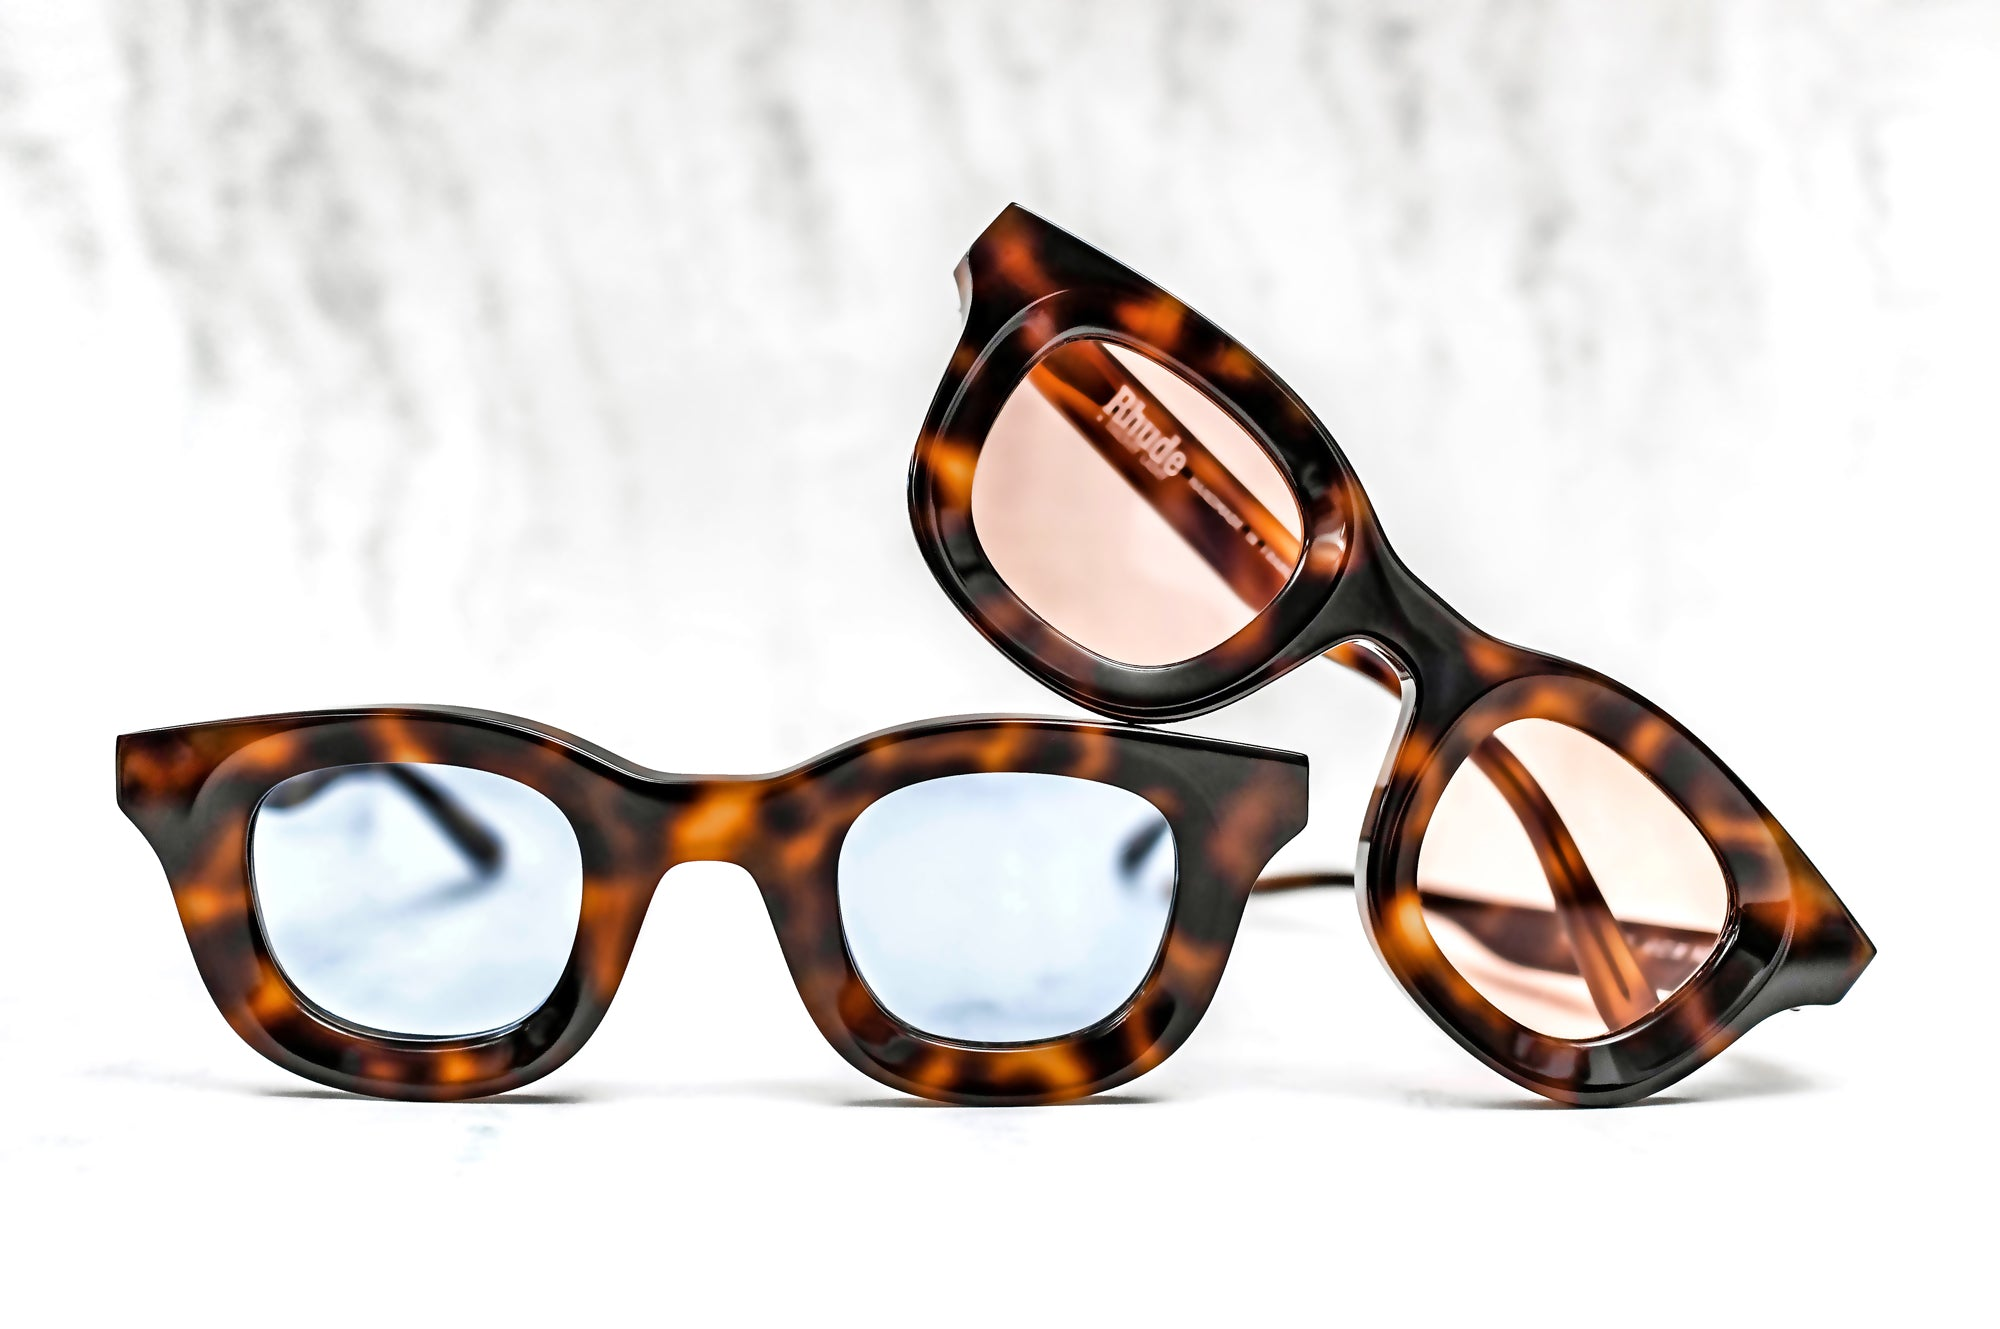 RHUDE x Thierry Lasry - Rhodeo Sunglasses